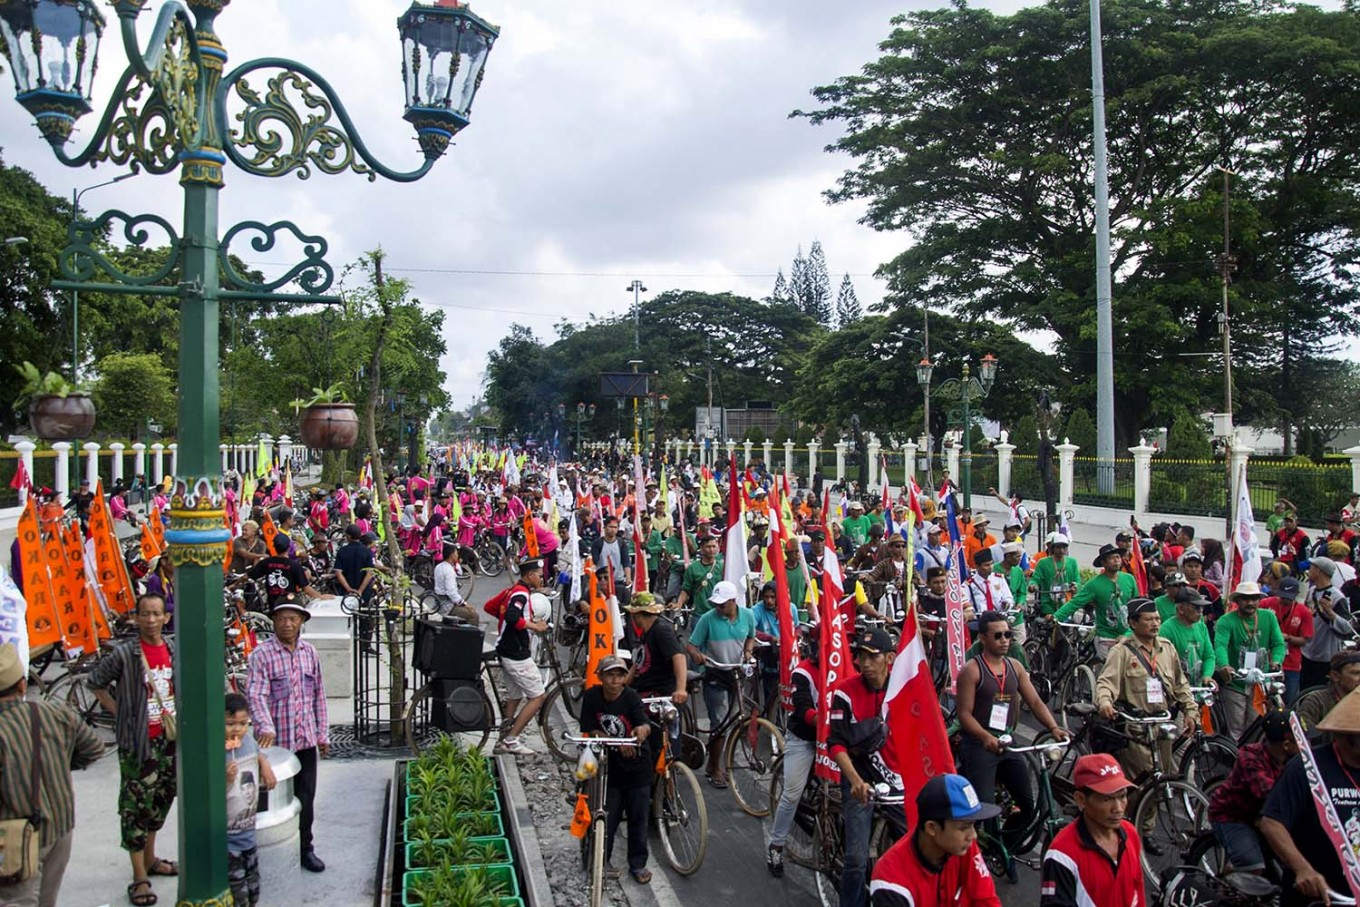 Thousands of cyclists ride their bikes in front of the Vrederburg fortress in Yogyakarta.  JP/Tarko Sudiarno